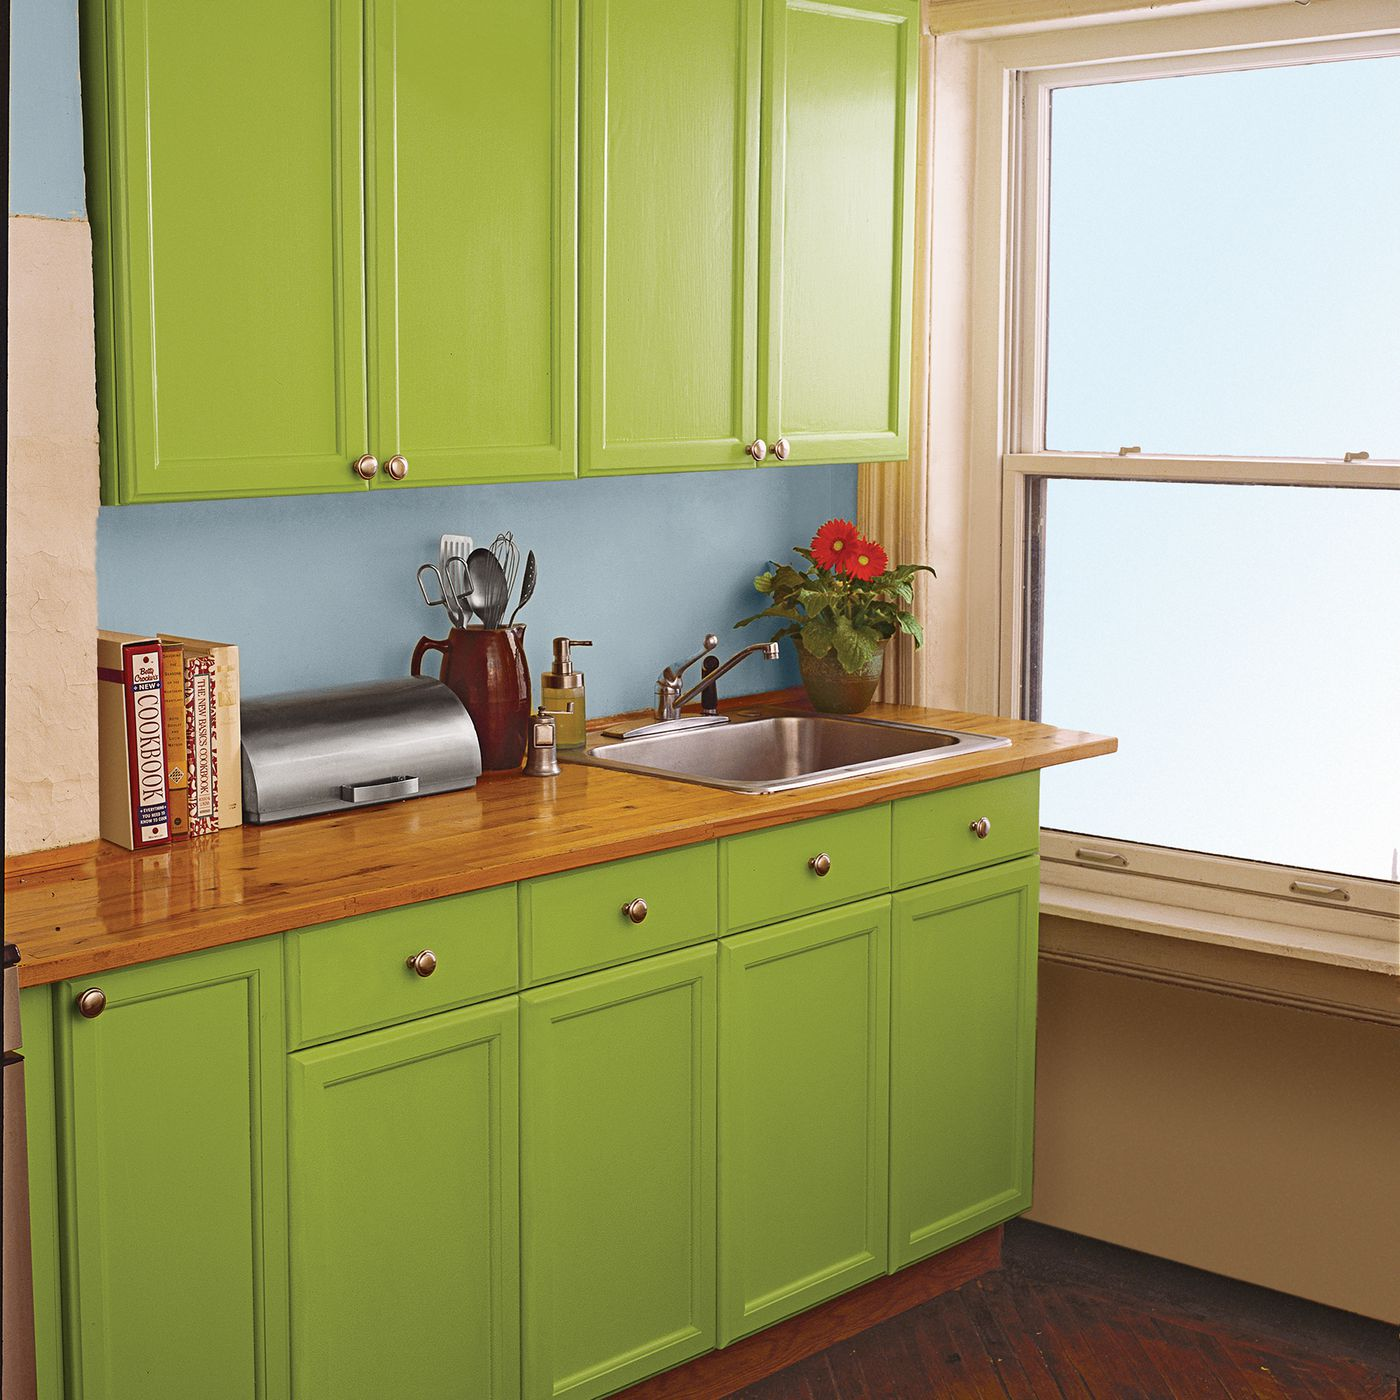 10 Ways To Update Your Kitchen Cabinets